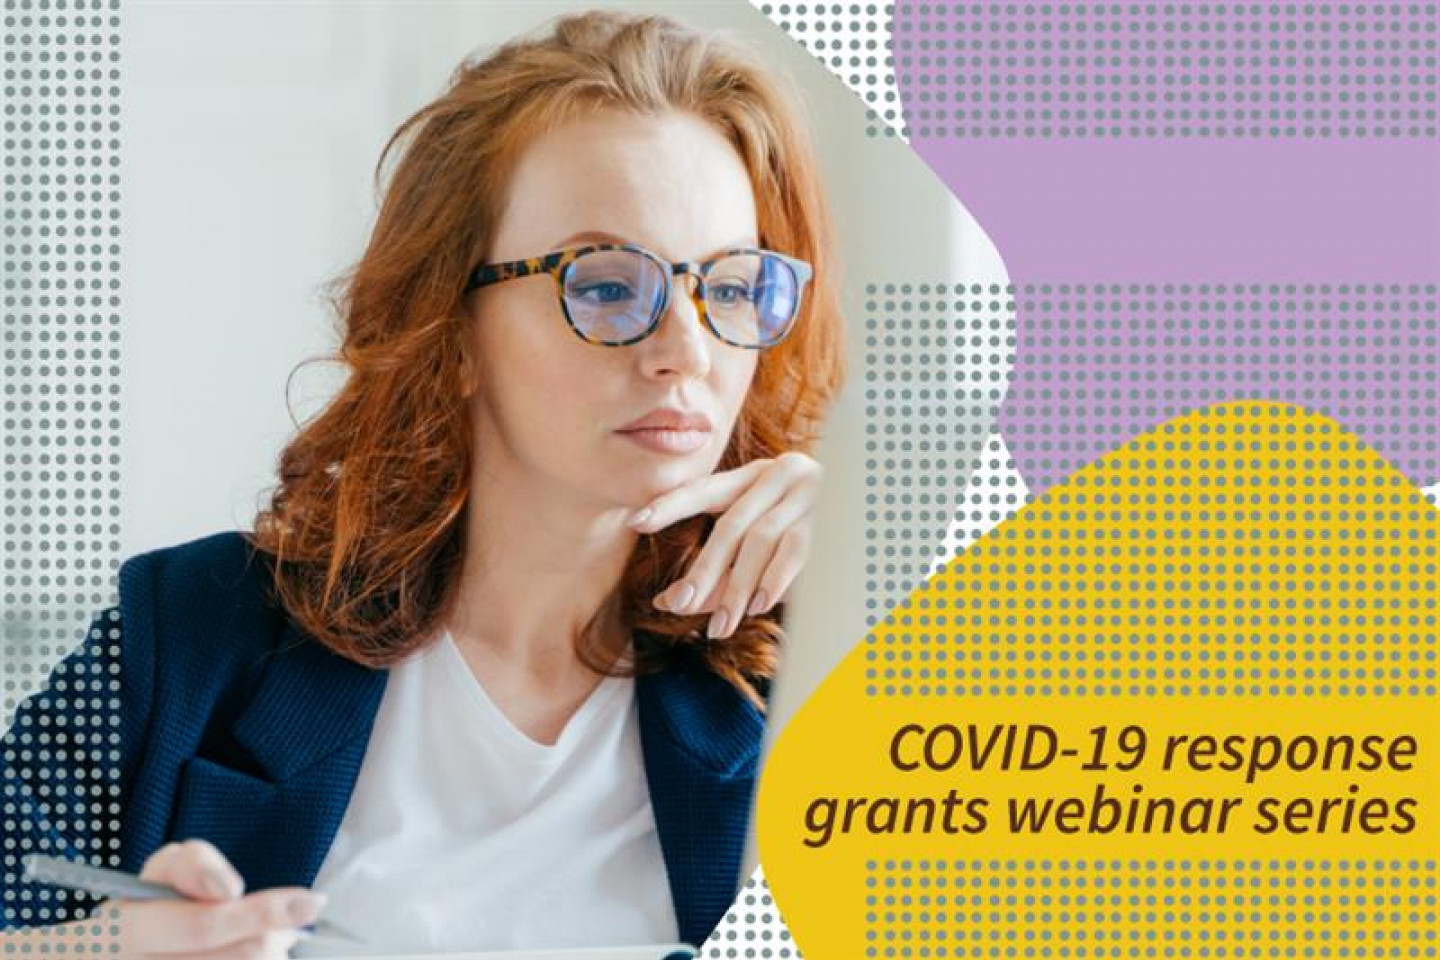 Image of a women with the words COVID-19 response grants webinar series.